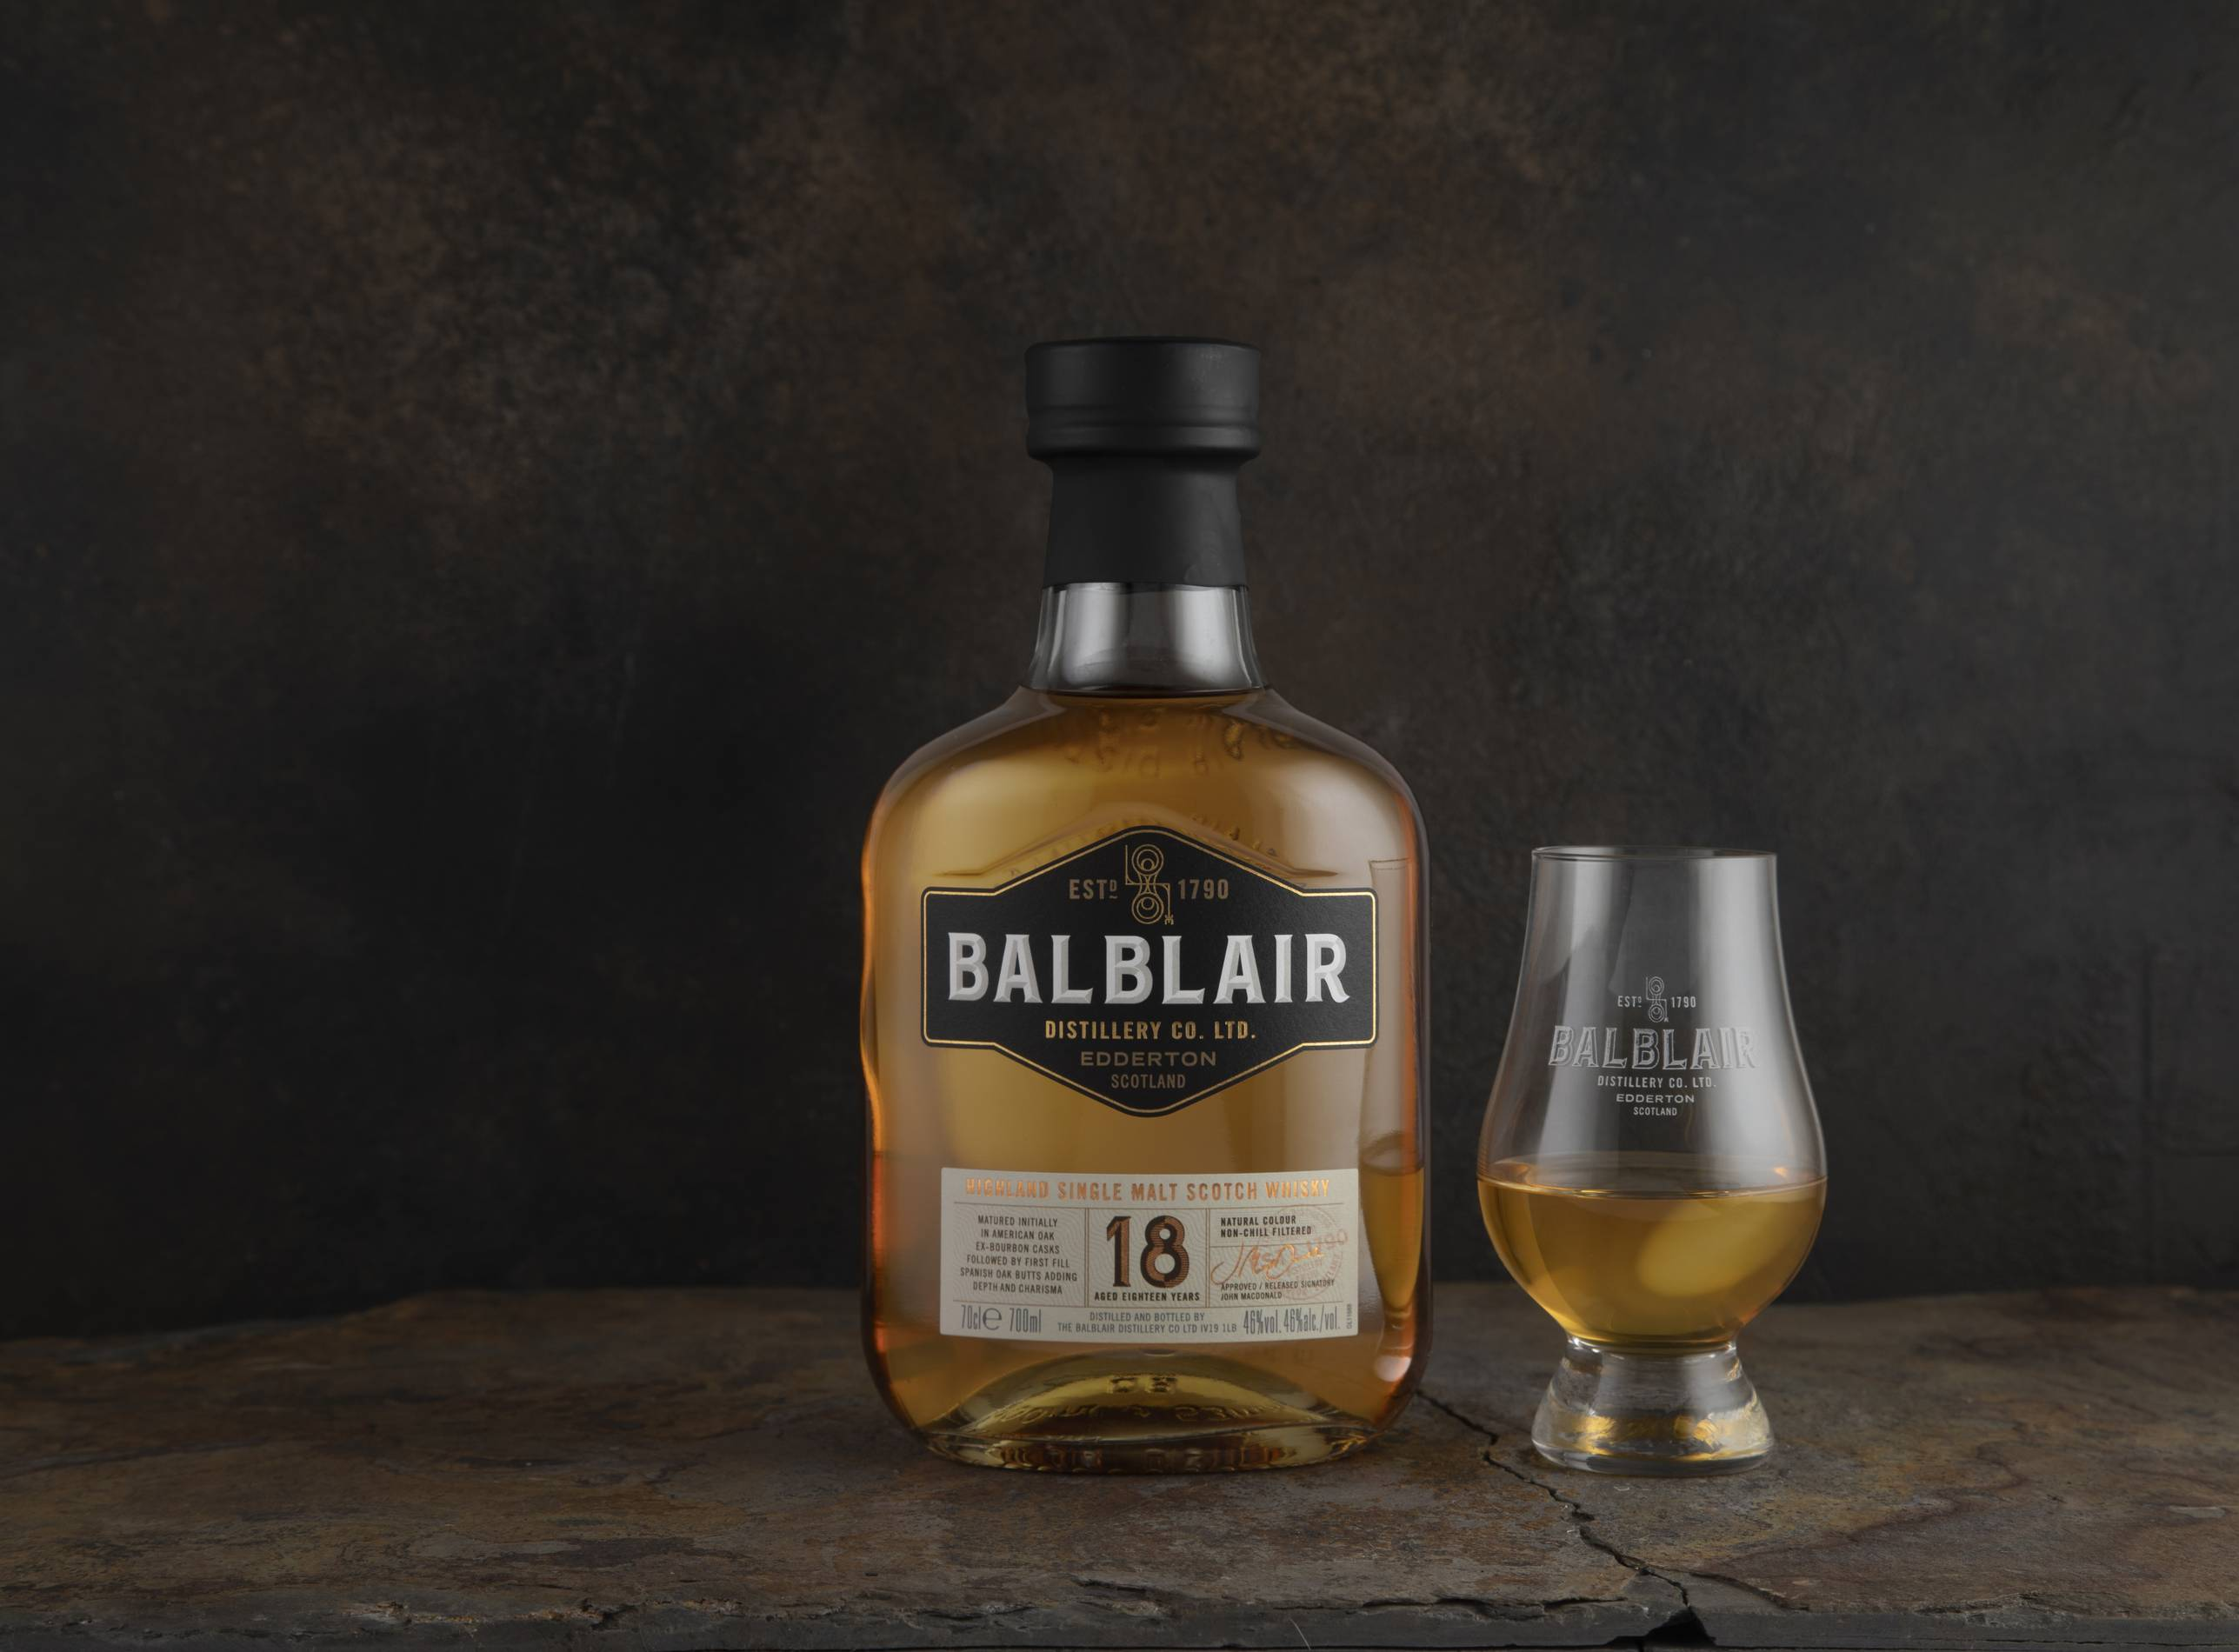 Balbair 18 year old single malt scotch bottle